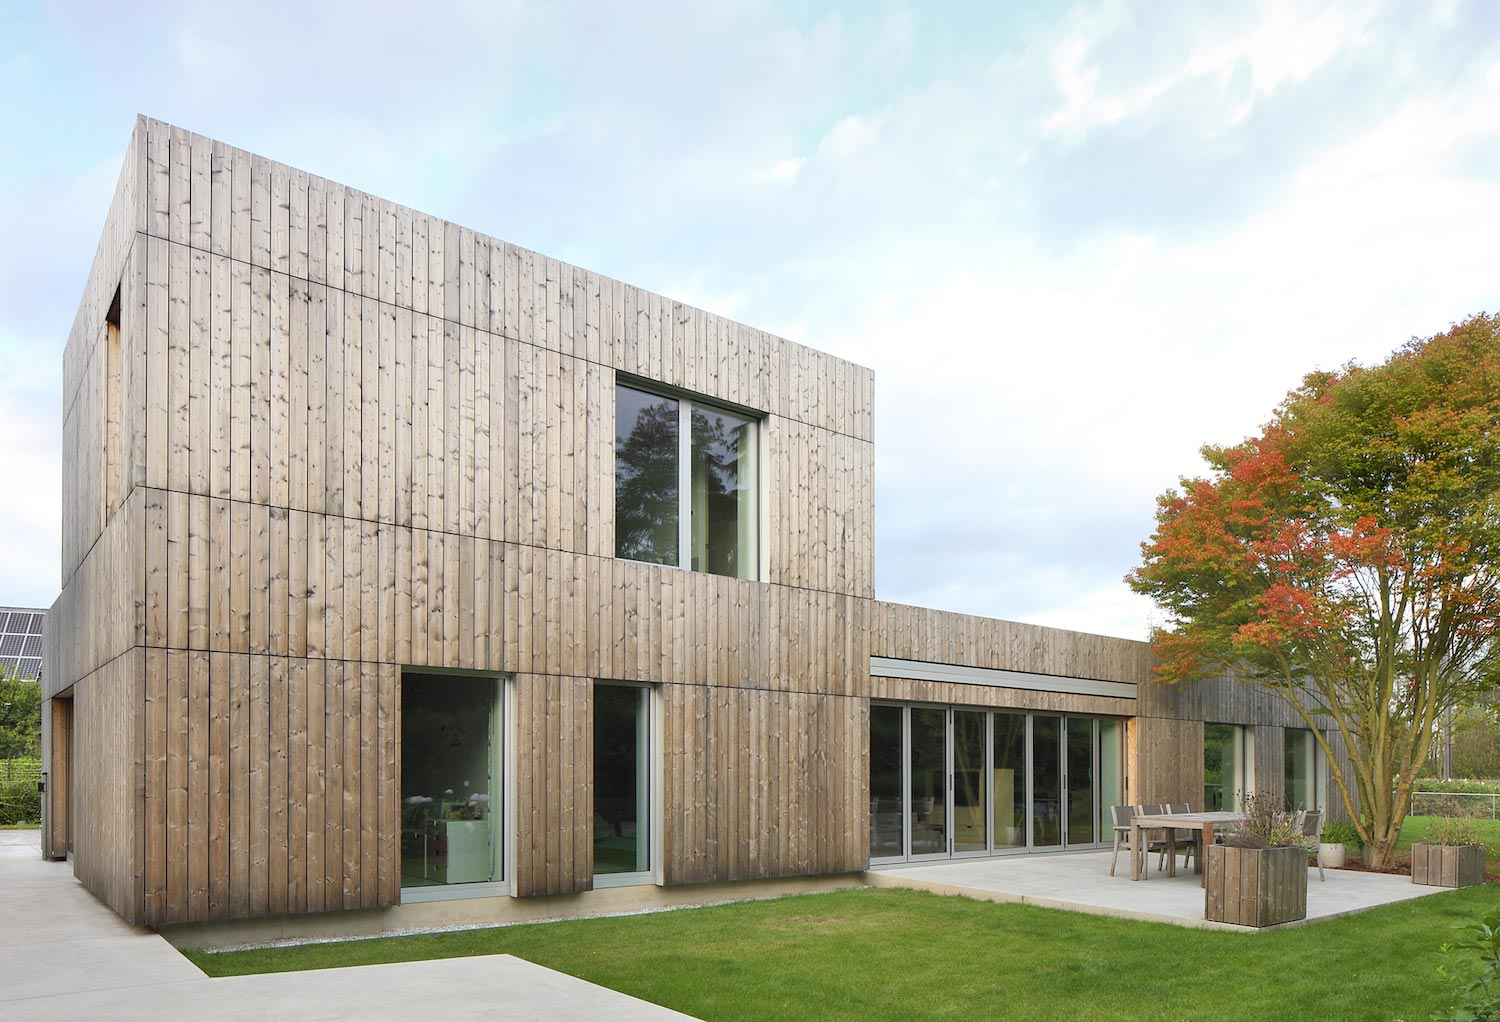 Bunga Low Thermowood Cladding Gives The Facades A Modern